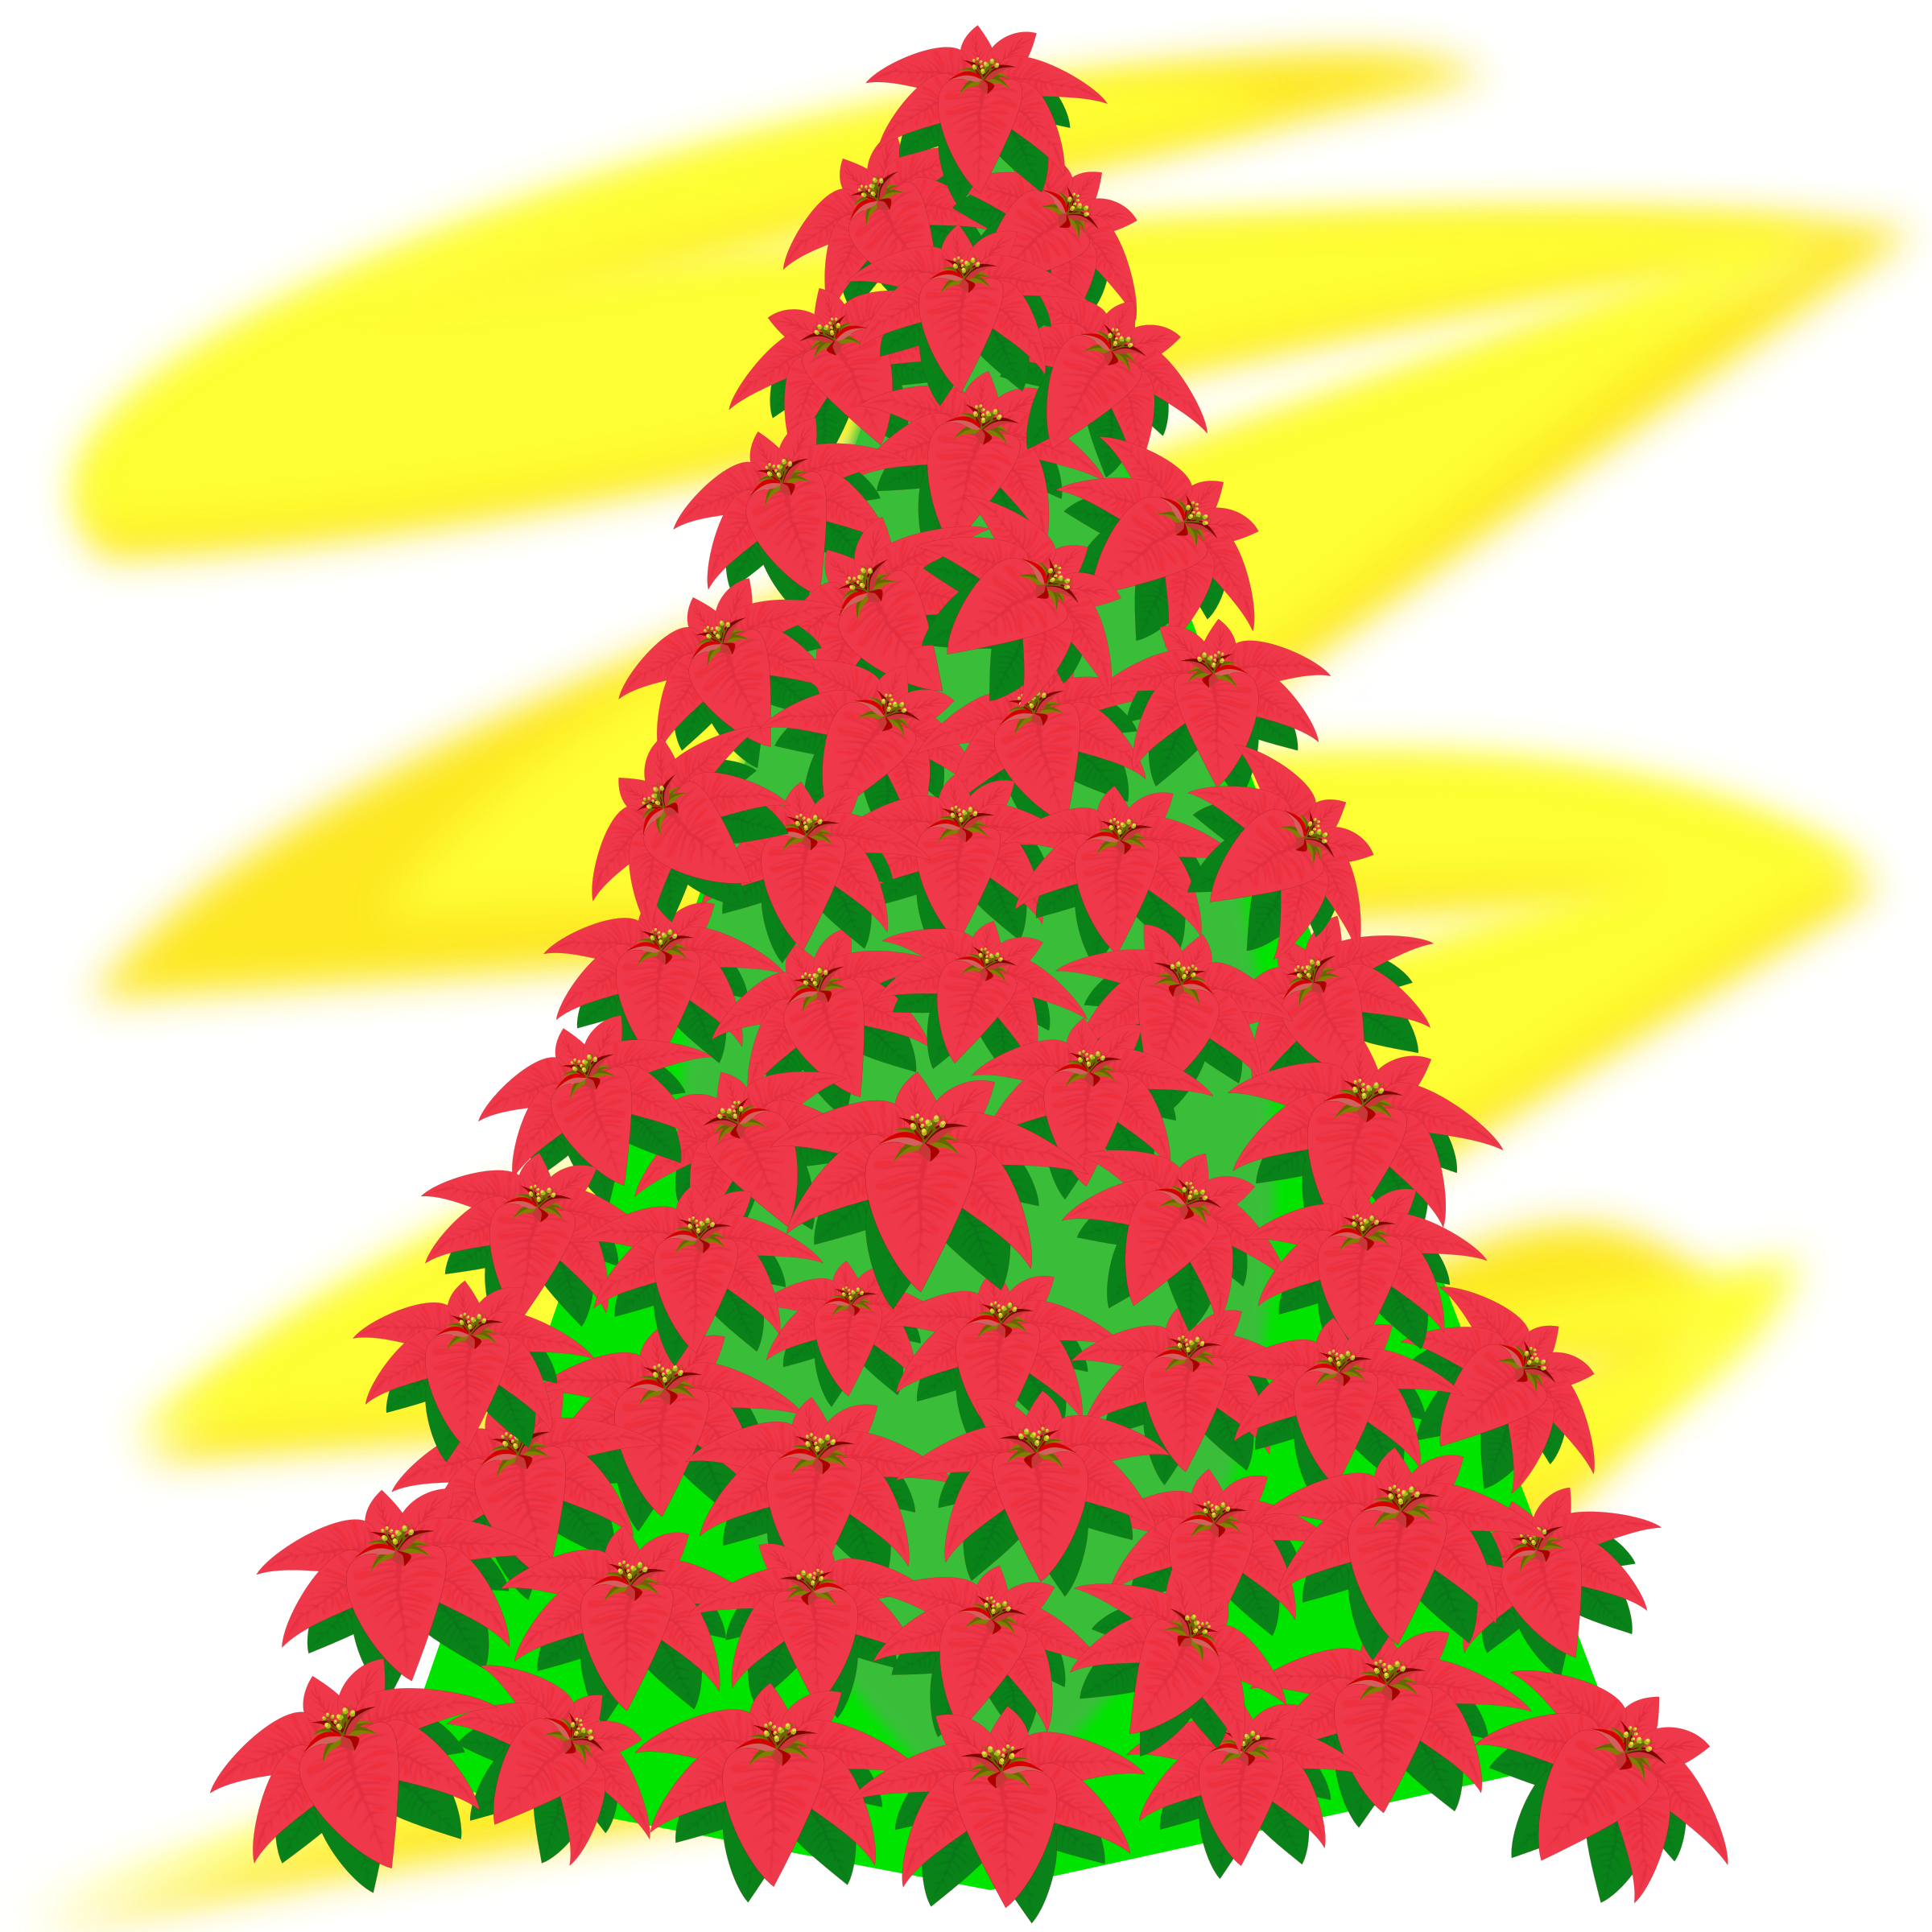 Clipart tree vector. Free christmas red silhouette